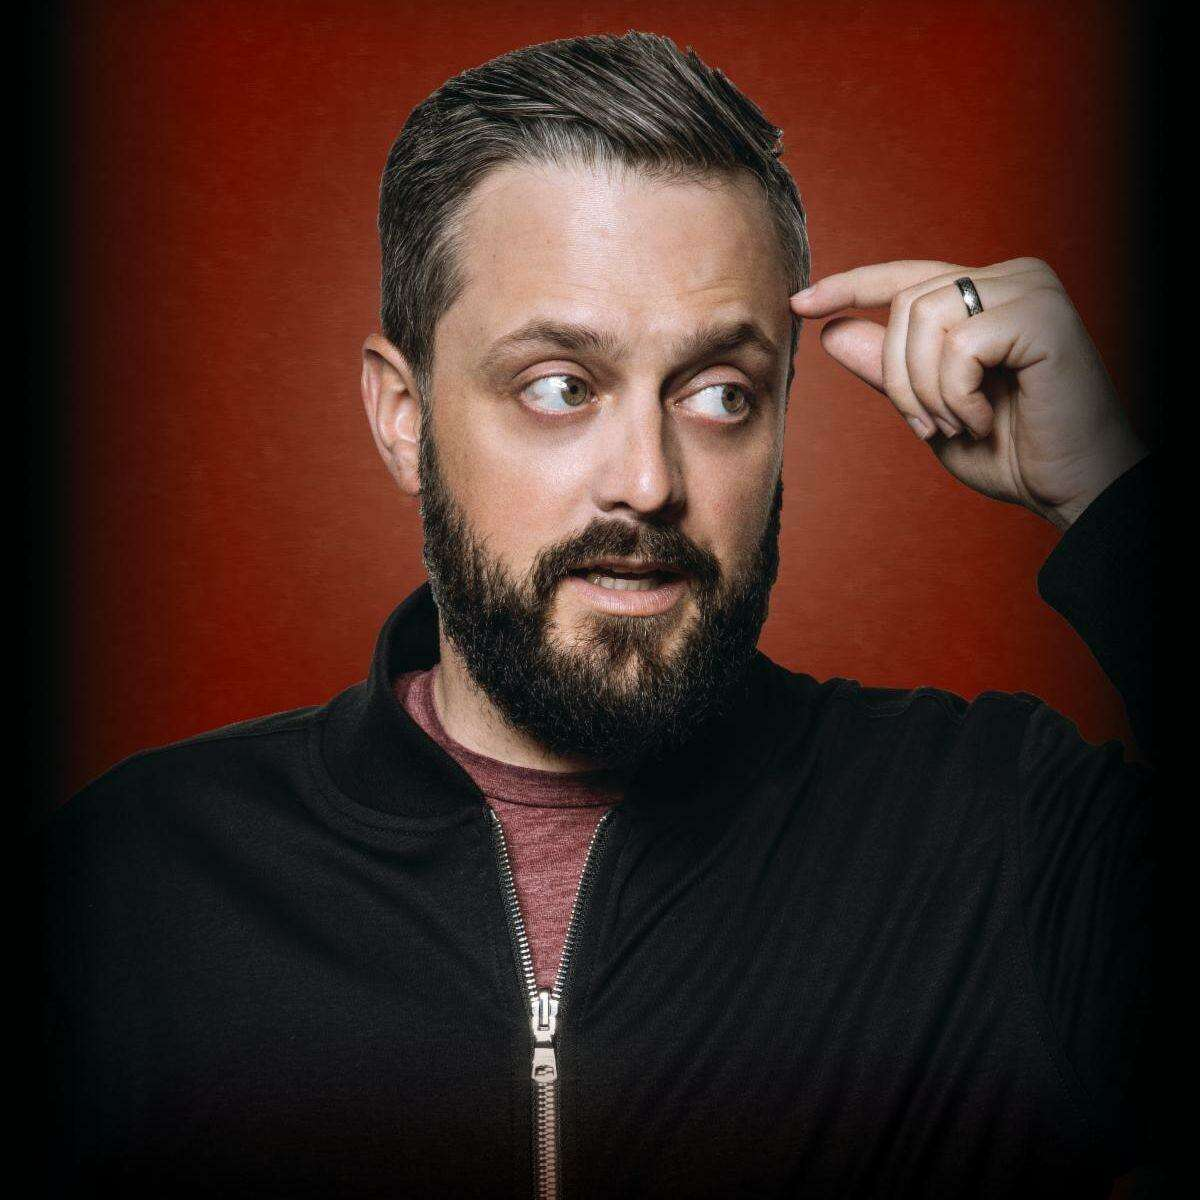 Tickets for performances by musician Melissa Etheridge and comedians Nate Bargatze, pictured, and Kevin James are now on sale at the Warner Theatre in Torrington.